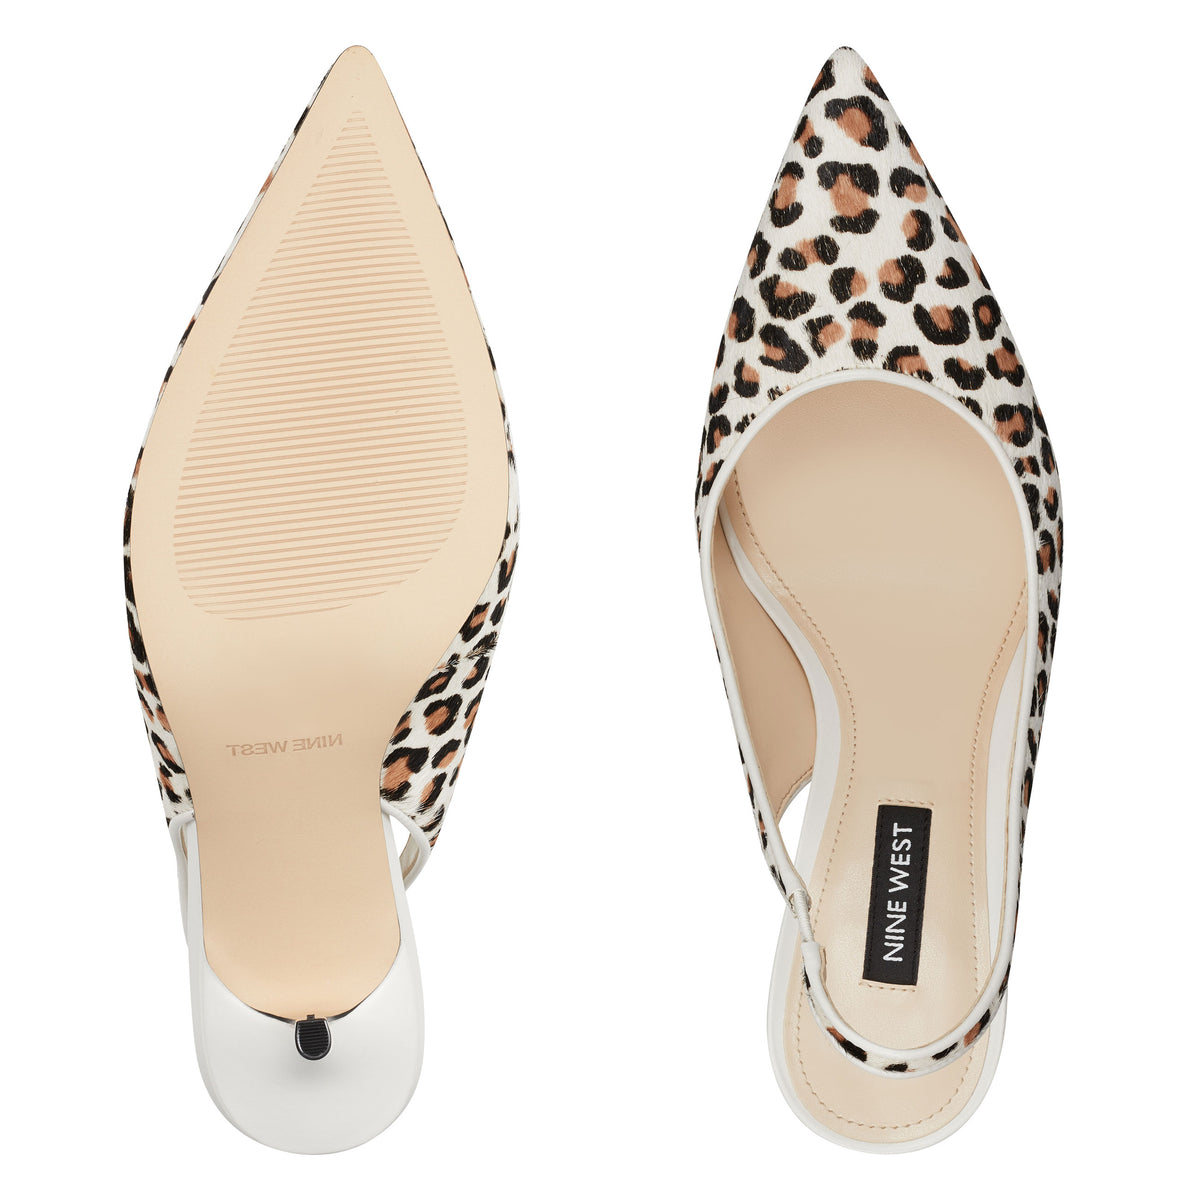 holly-slingback-pumps-in-ivory-leopard